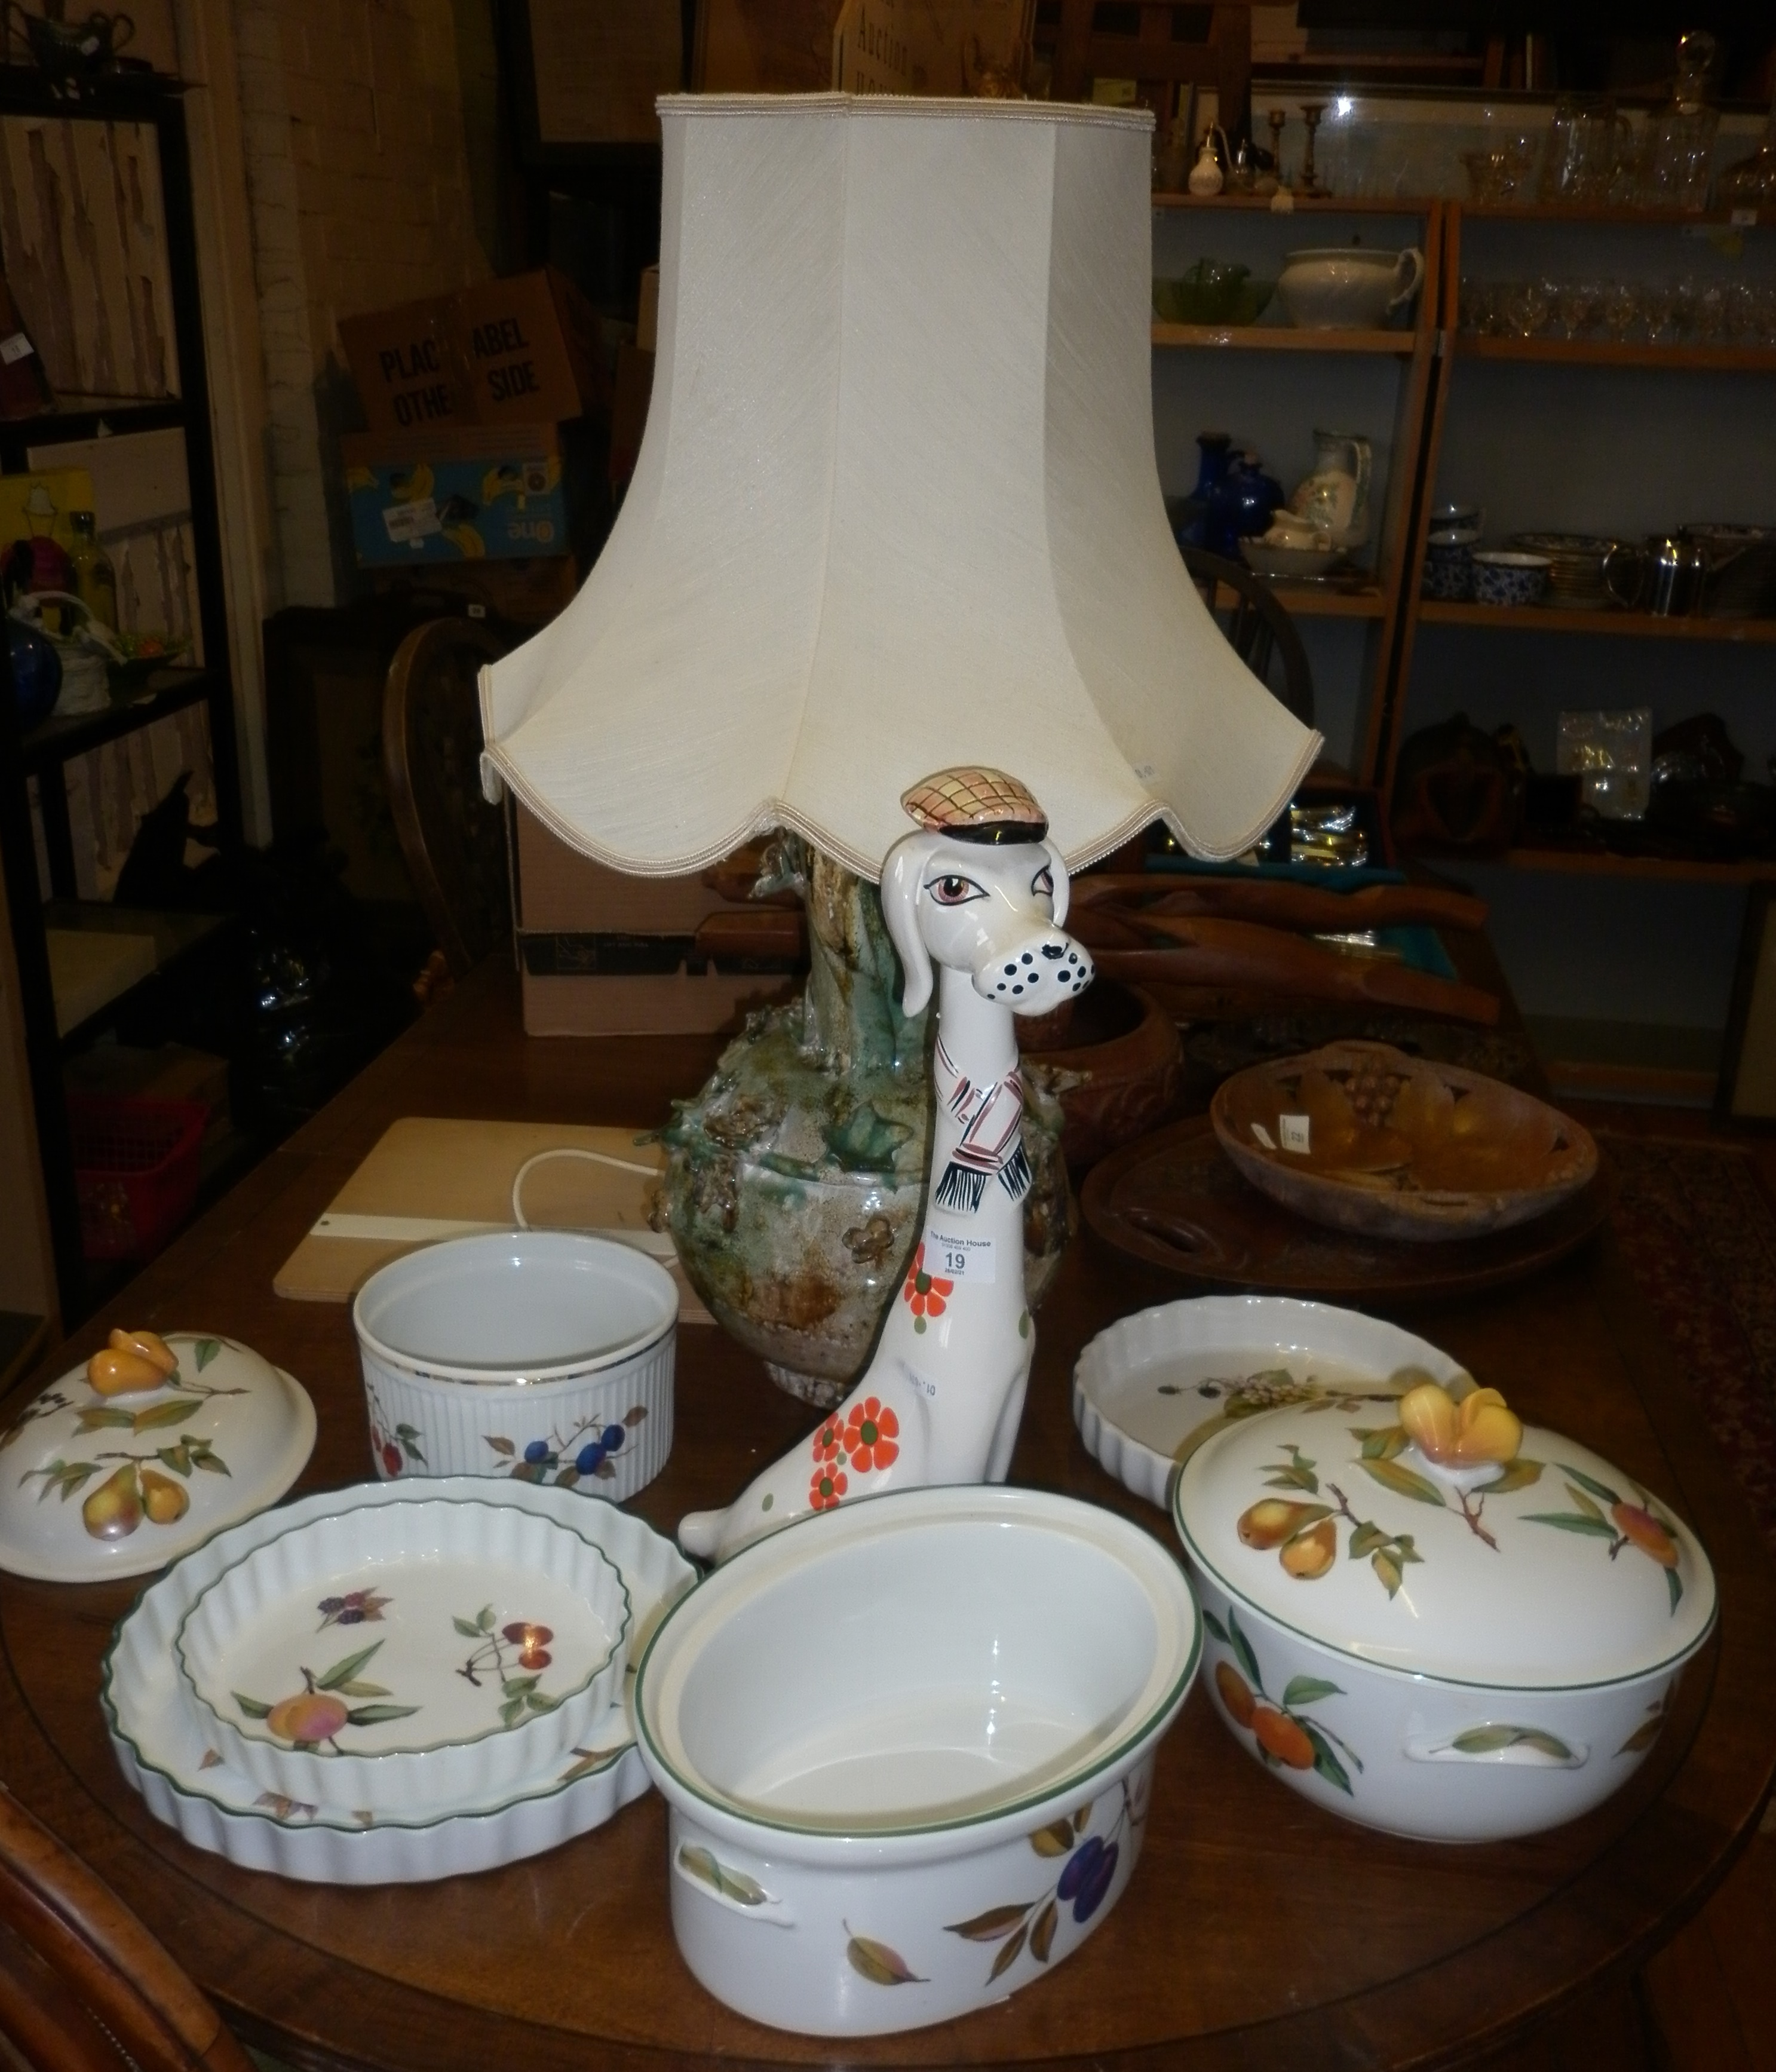 1960's Italian retro ceramic dog decanter, Royal Worcester Evesham tureens, flan dishes and a